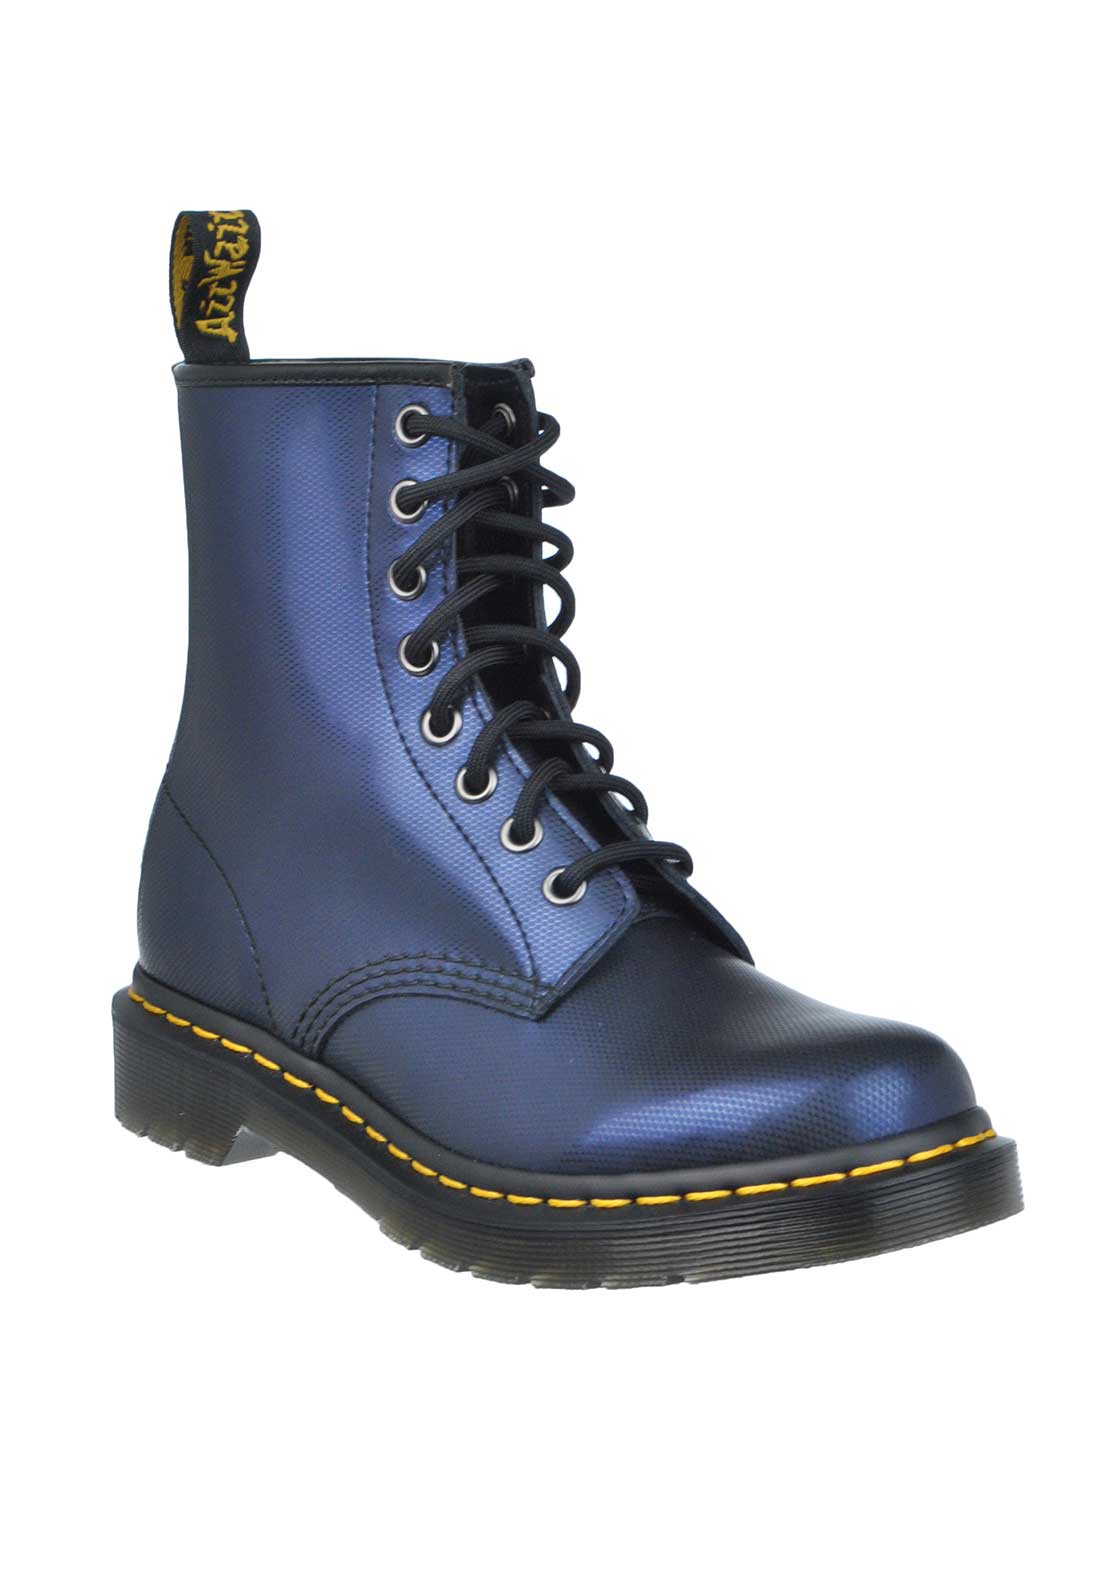 Dr. Martens Womens Airwair 1460 Tracer Leather Boot, Navy